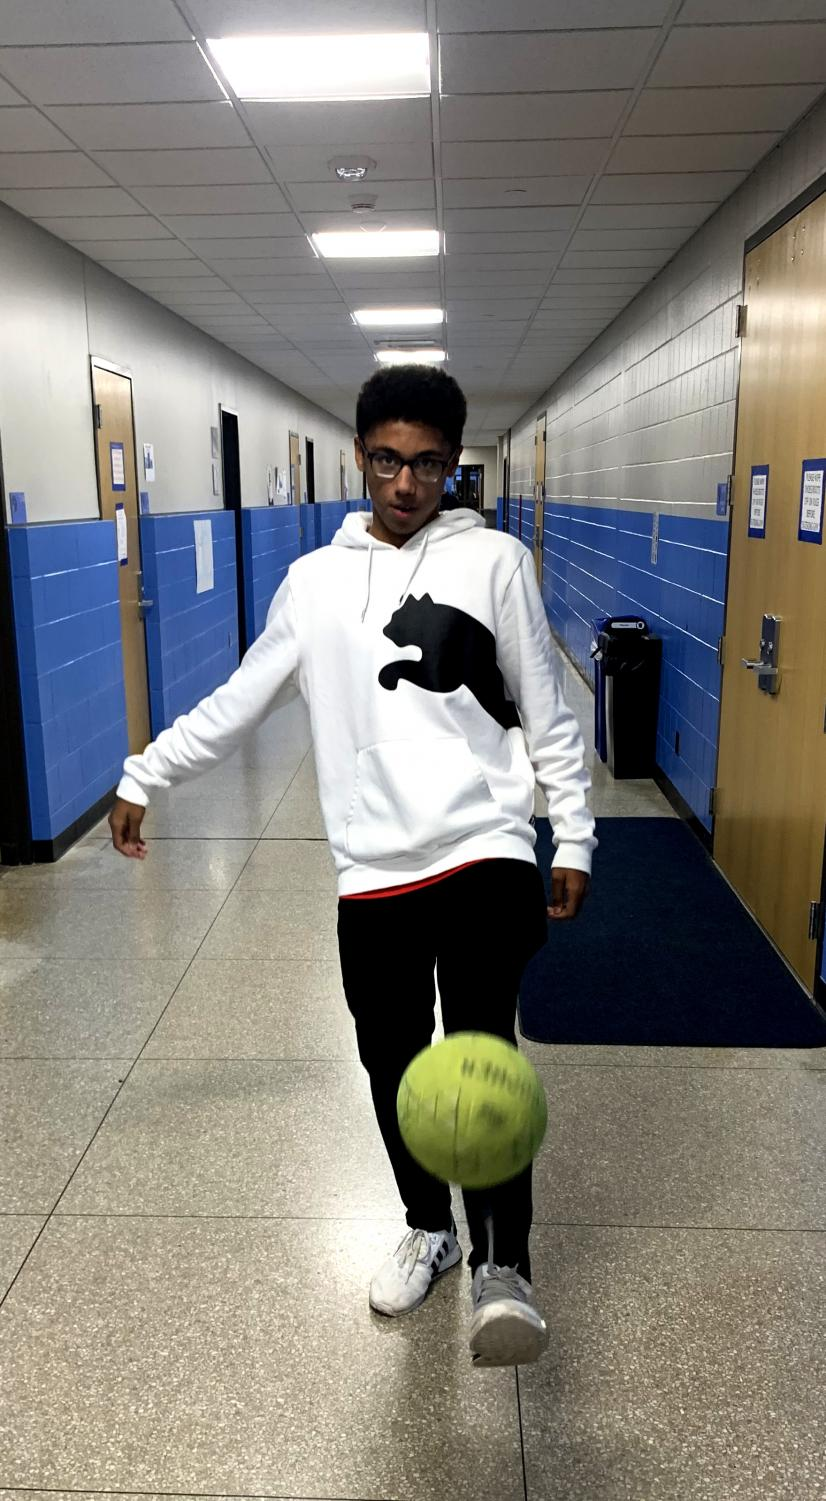 Freshman Darrell James kicks a soccer ball in the gym hallway Nov. 11. James says that he looks up to professional soccer player Lionel Messi.